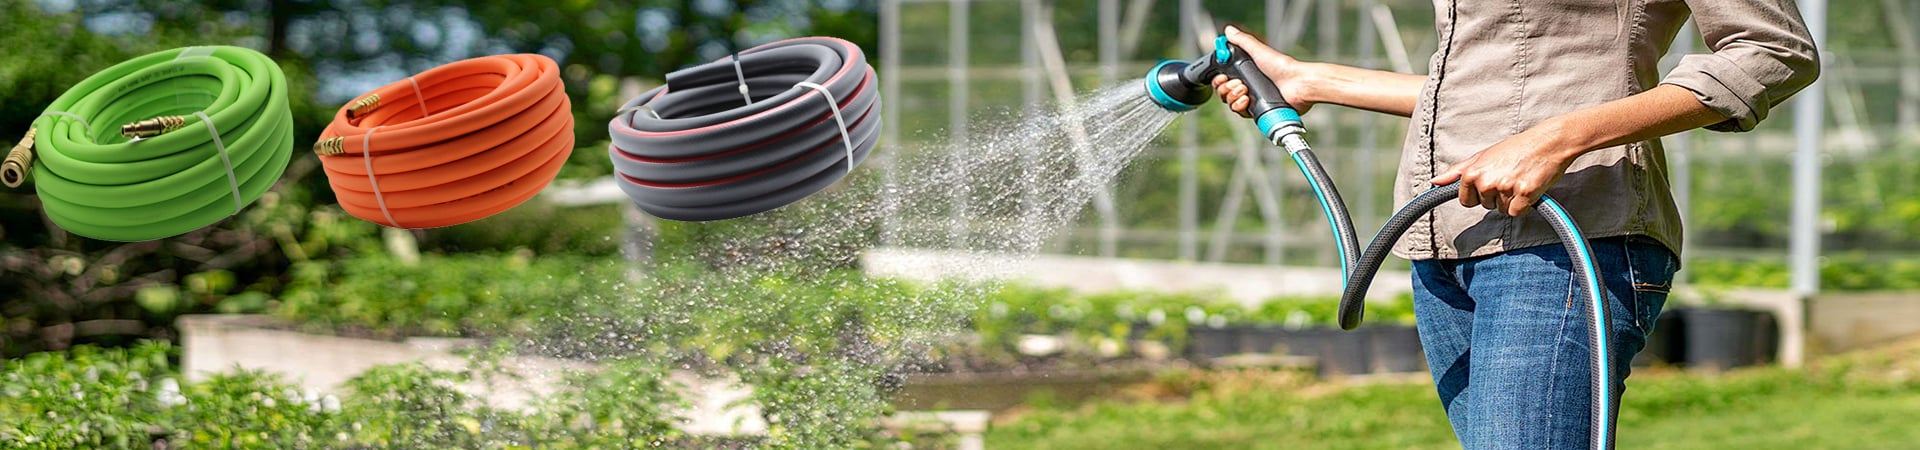 Banner of Garden Water Hose